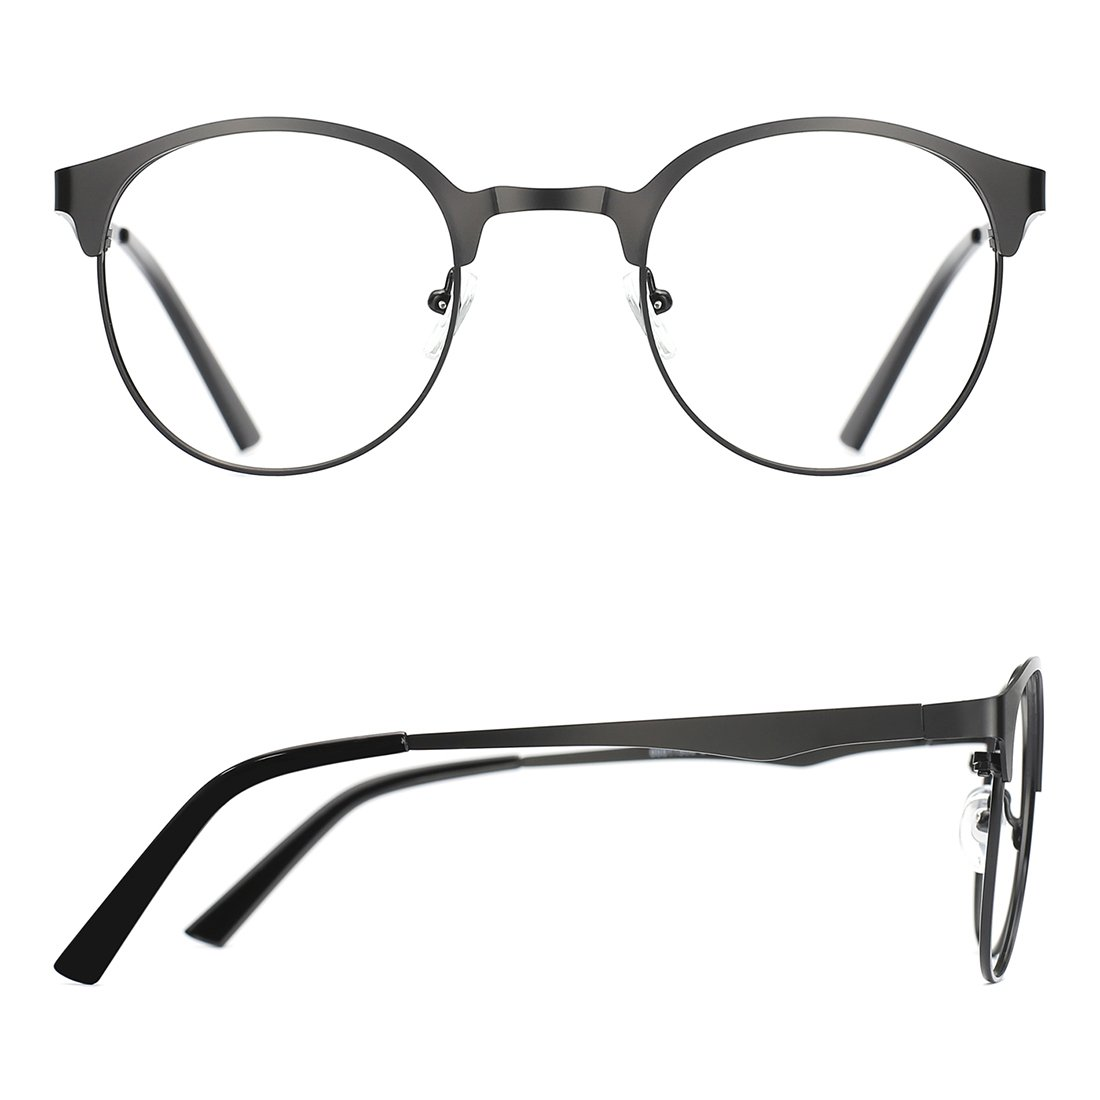 3f540171814 Amazon.com  TIJN New Round Metal Non-Prescription Glasses Frame with Clear  Lens  Sports   Outdoors